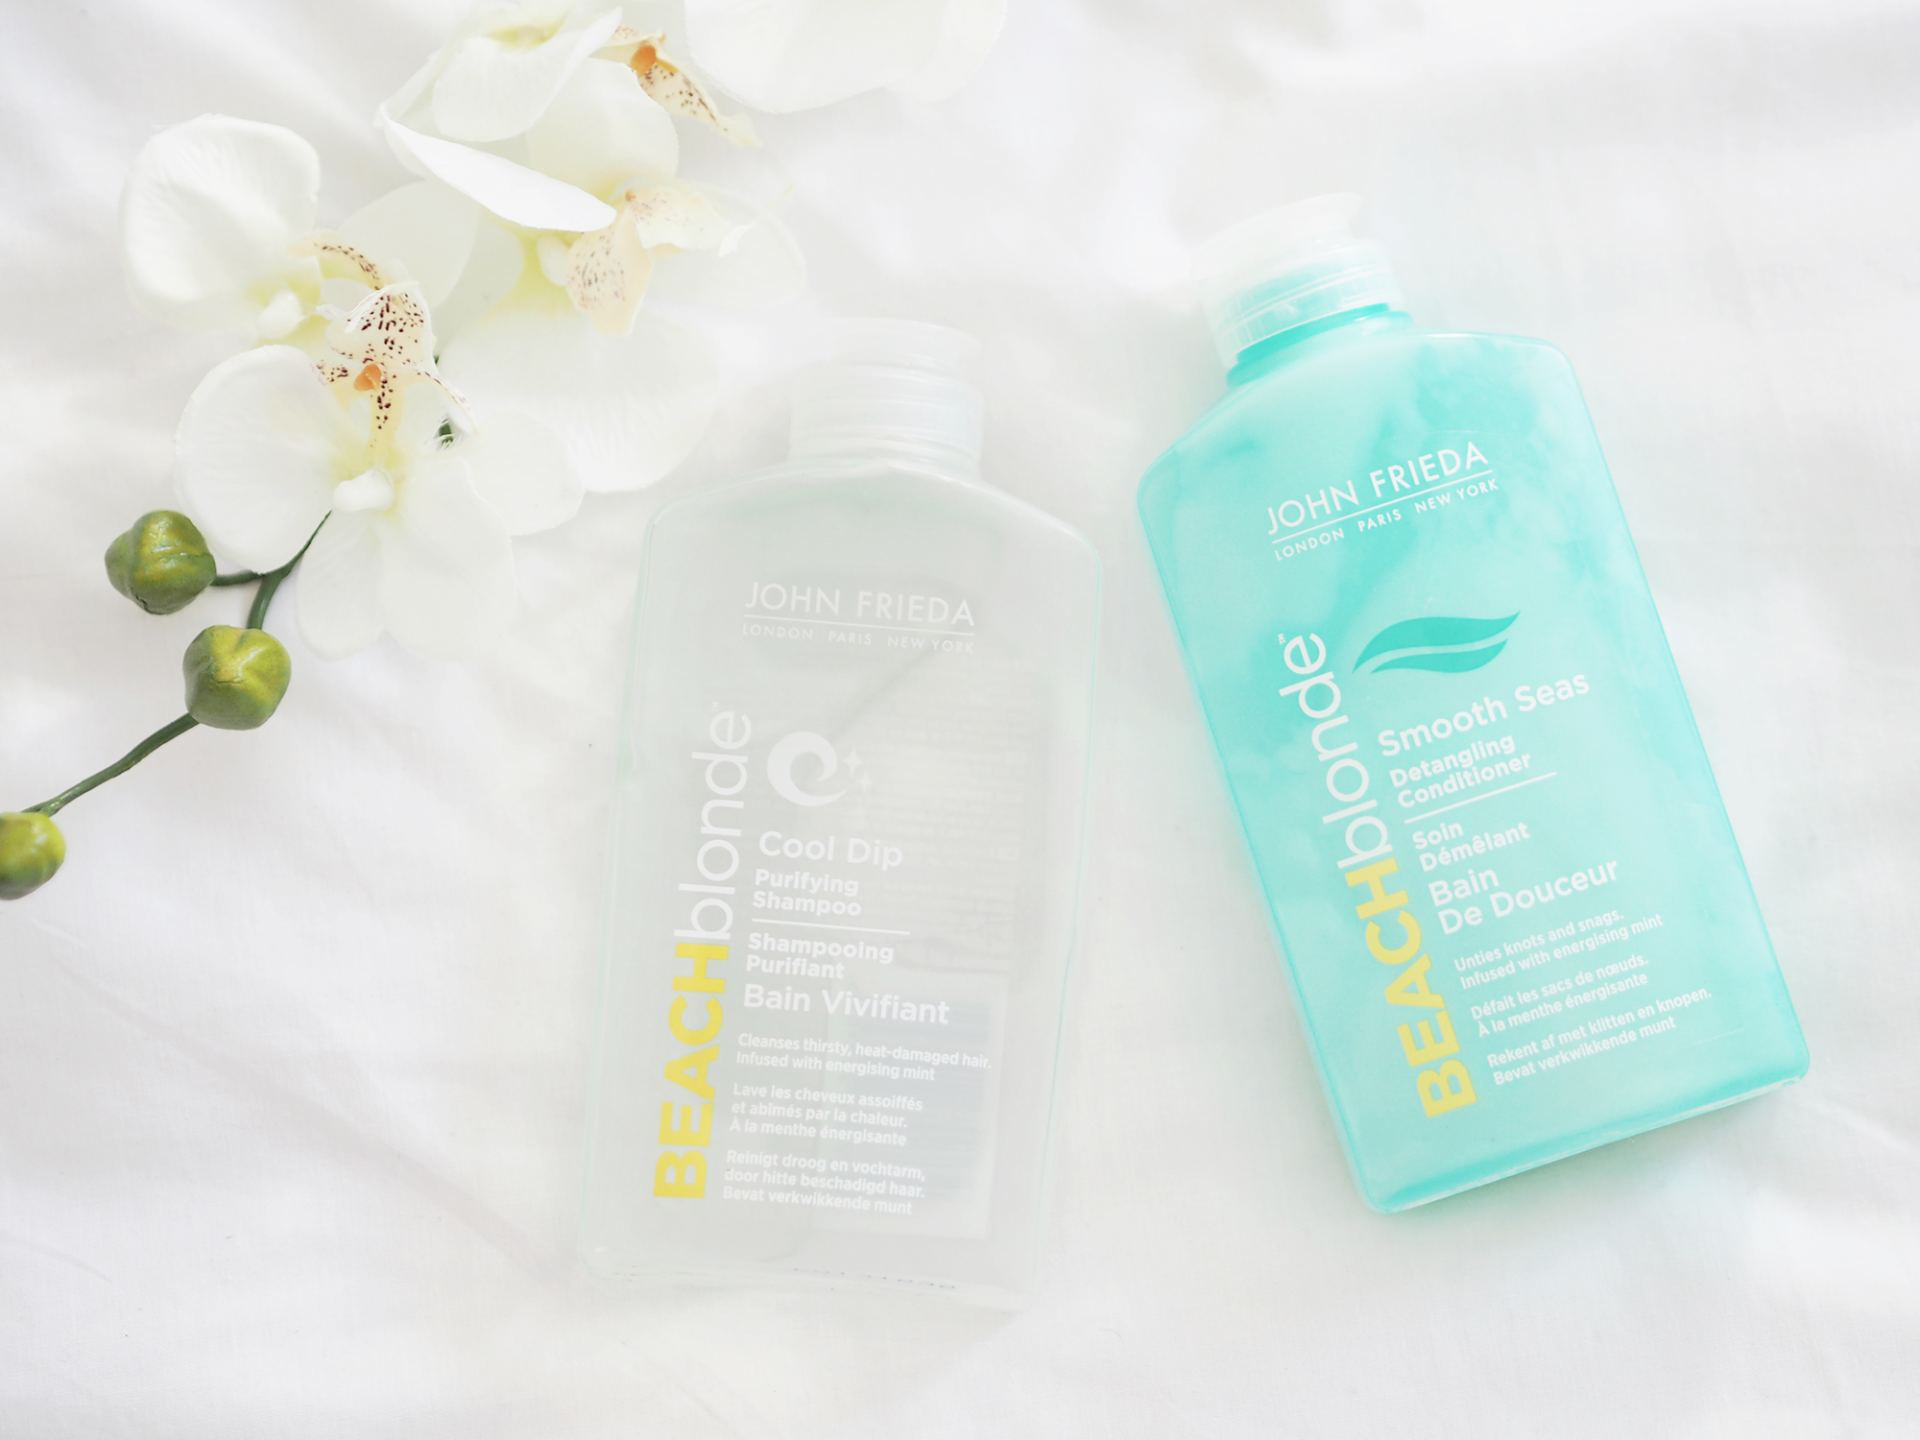 john frieda beach blonde shampoo